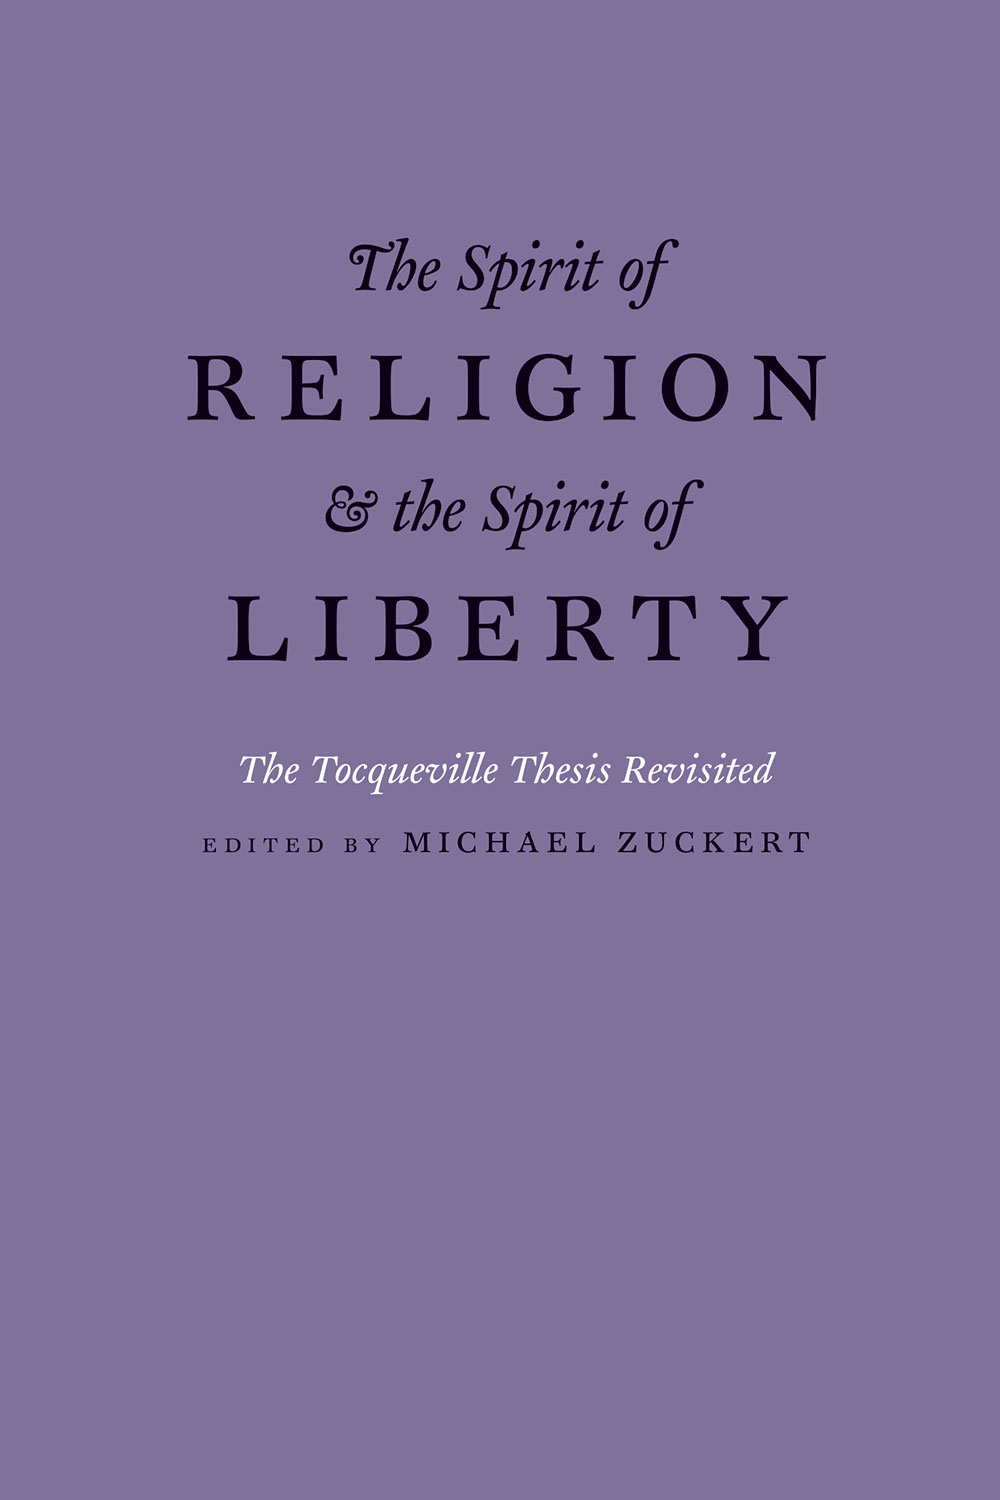 The Spirit of Religion and the Spirit of Liberty